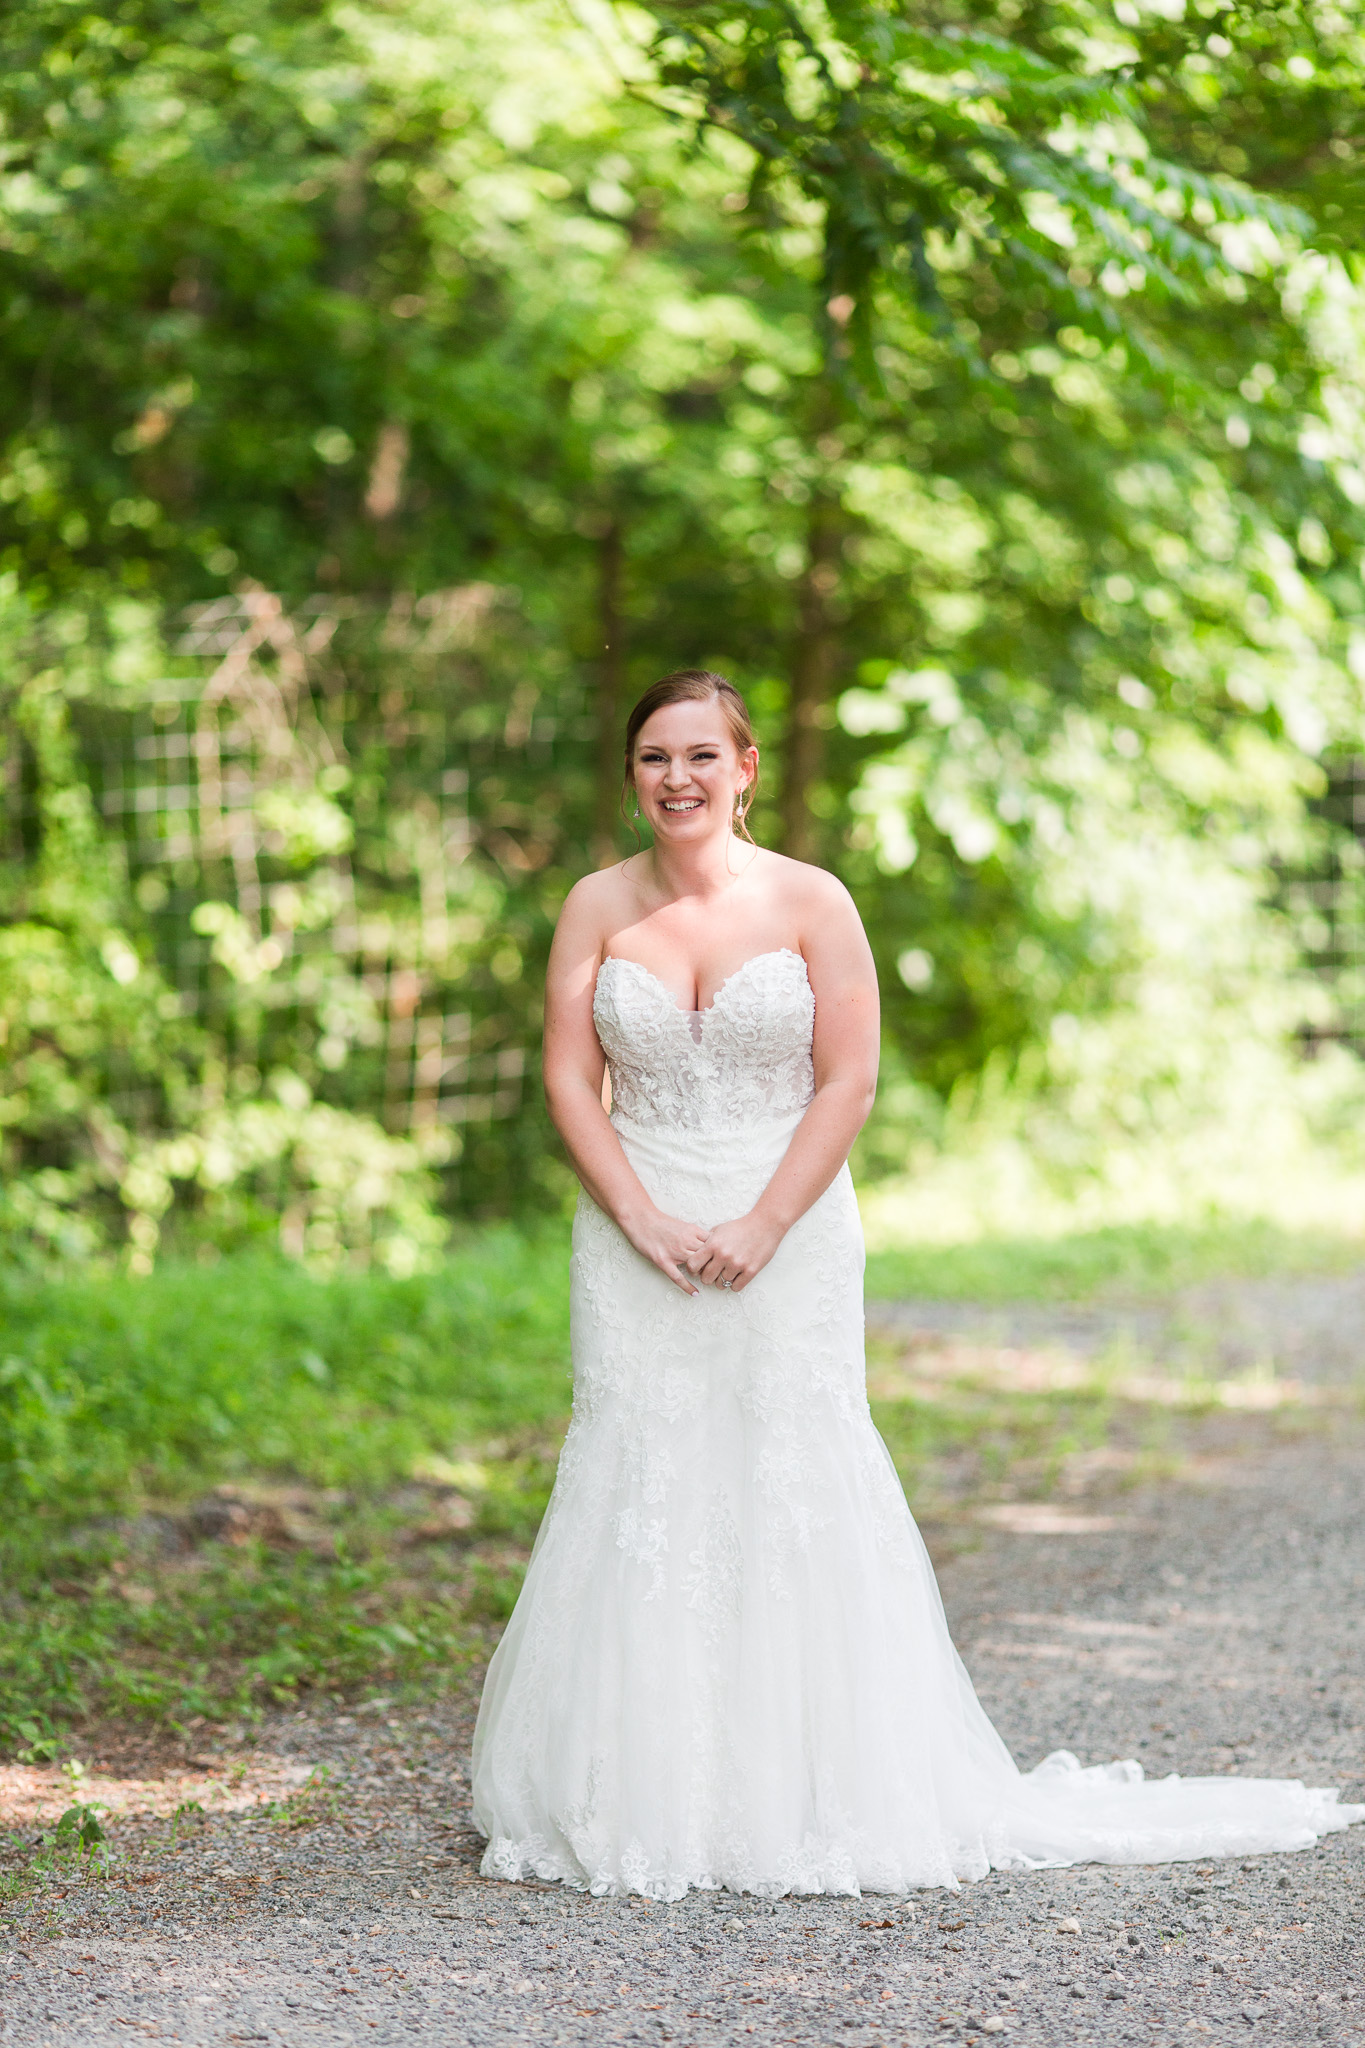 Delfosse Winery Wedding || Charlottesville Vineyard Wedding || Central VA Wedding Photographer || www.ashleyeiban.com